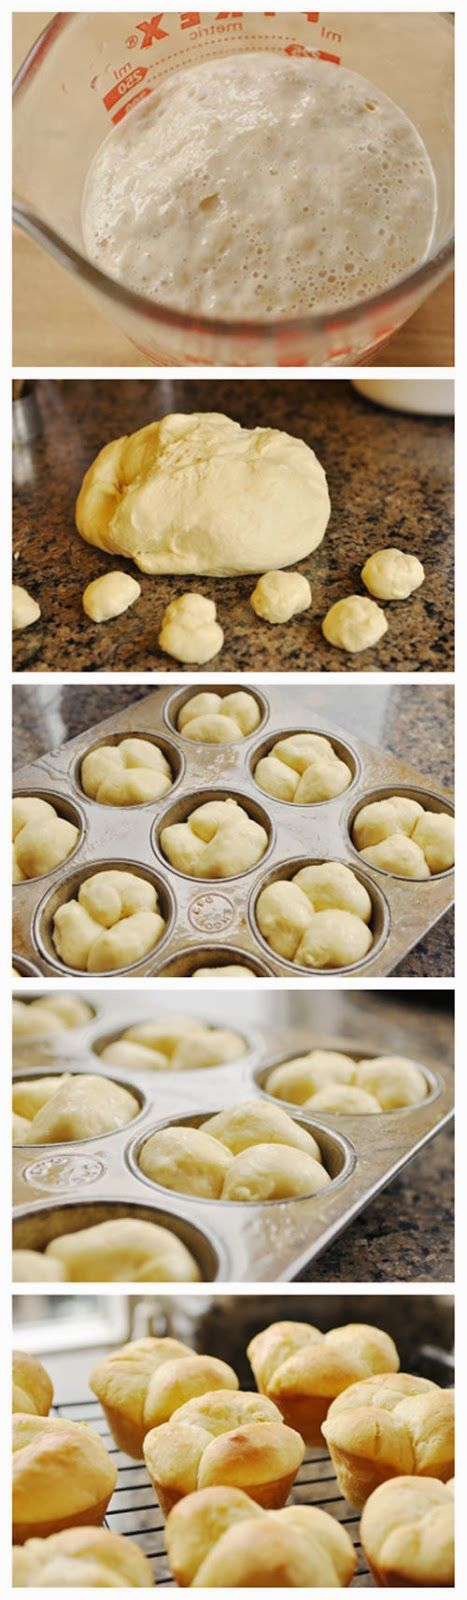 Butter Rolls- need more salt and would use salted butter to dip in before baking, but they were really easy to make and were very pretty and...